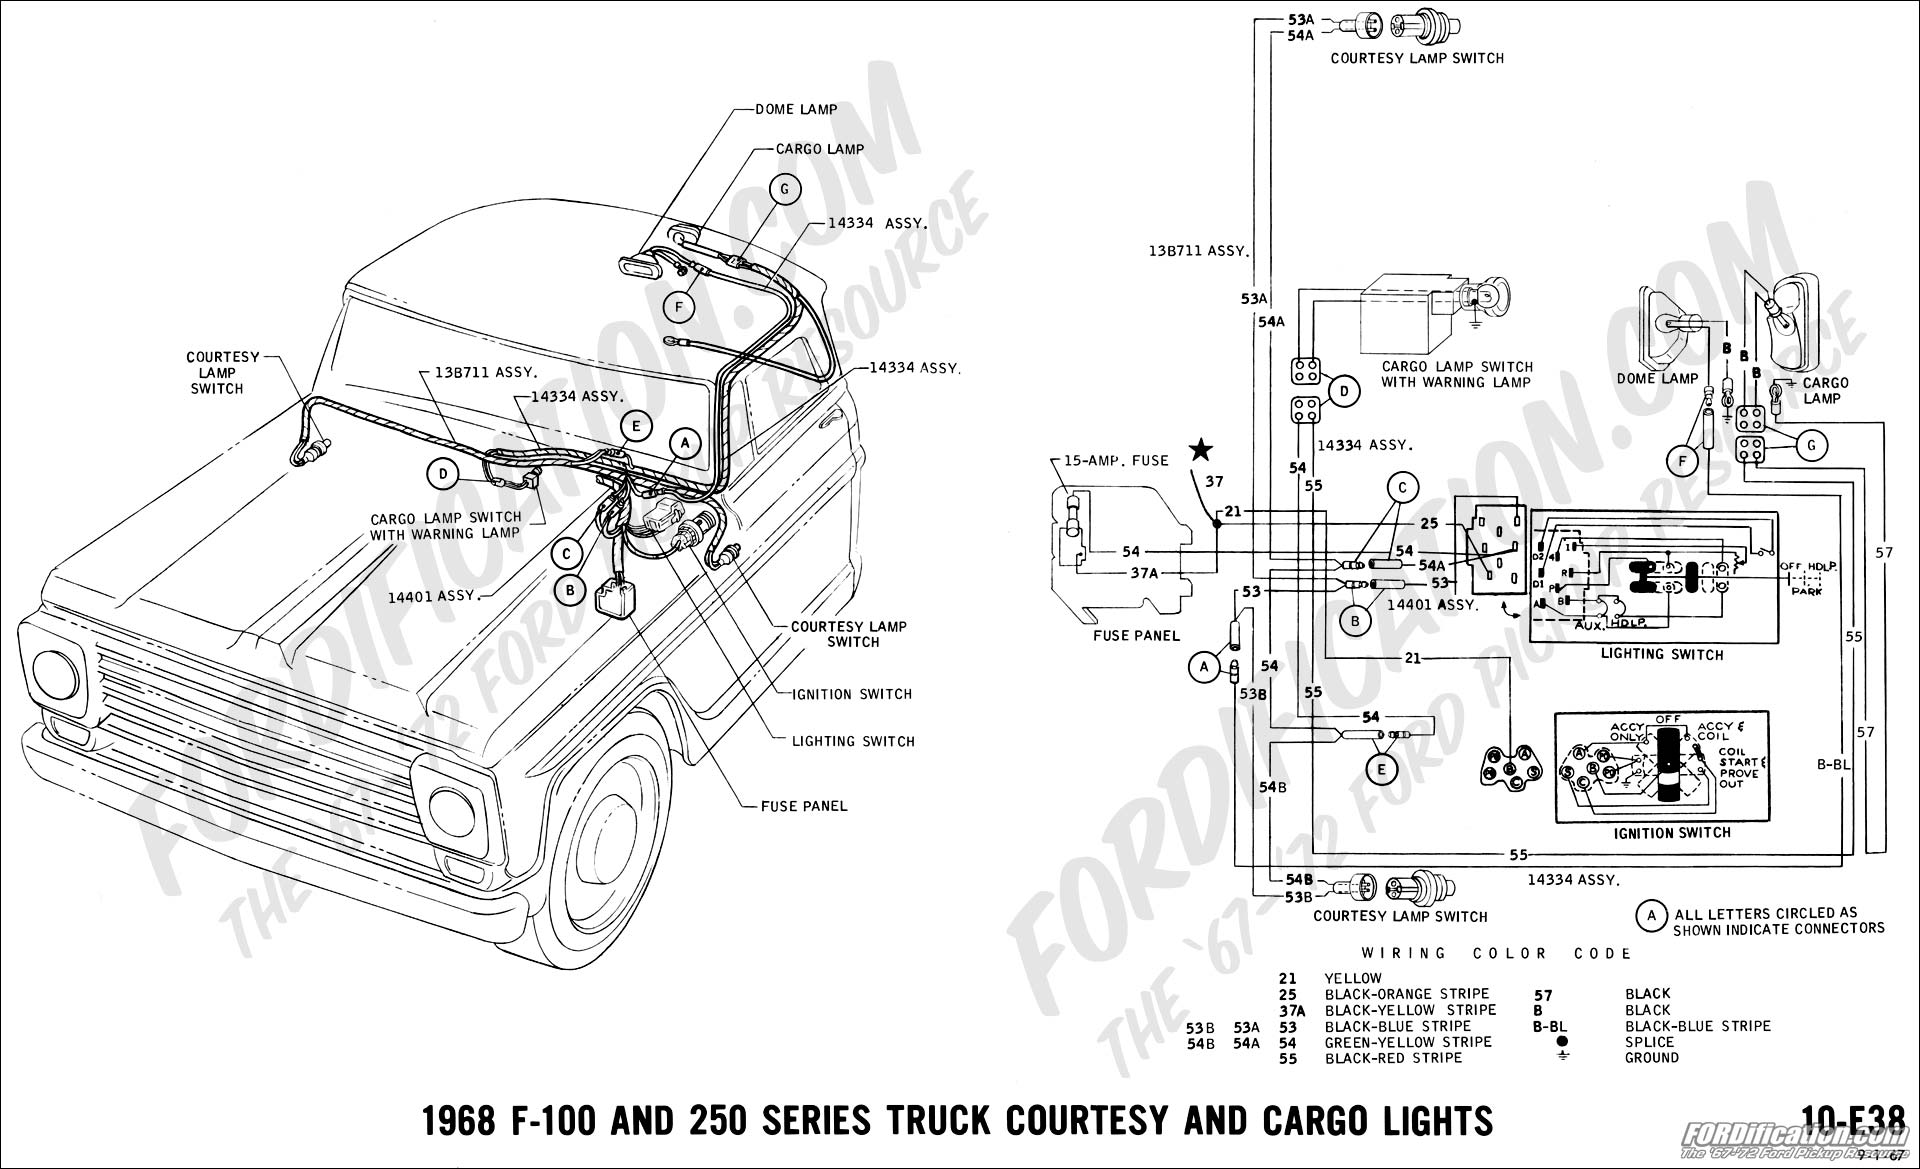 68 40 ford truck technical drawings and schematics section h wiring 1971 ford f250 wiring diagram at bakdesigns.co